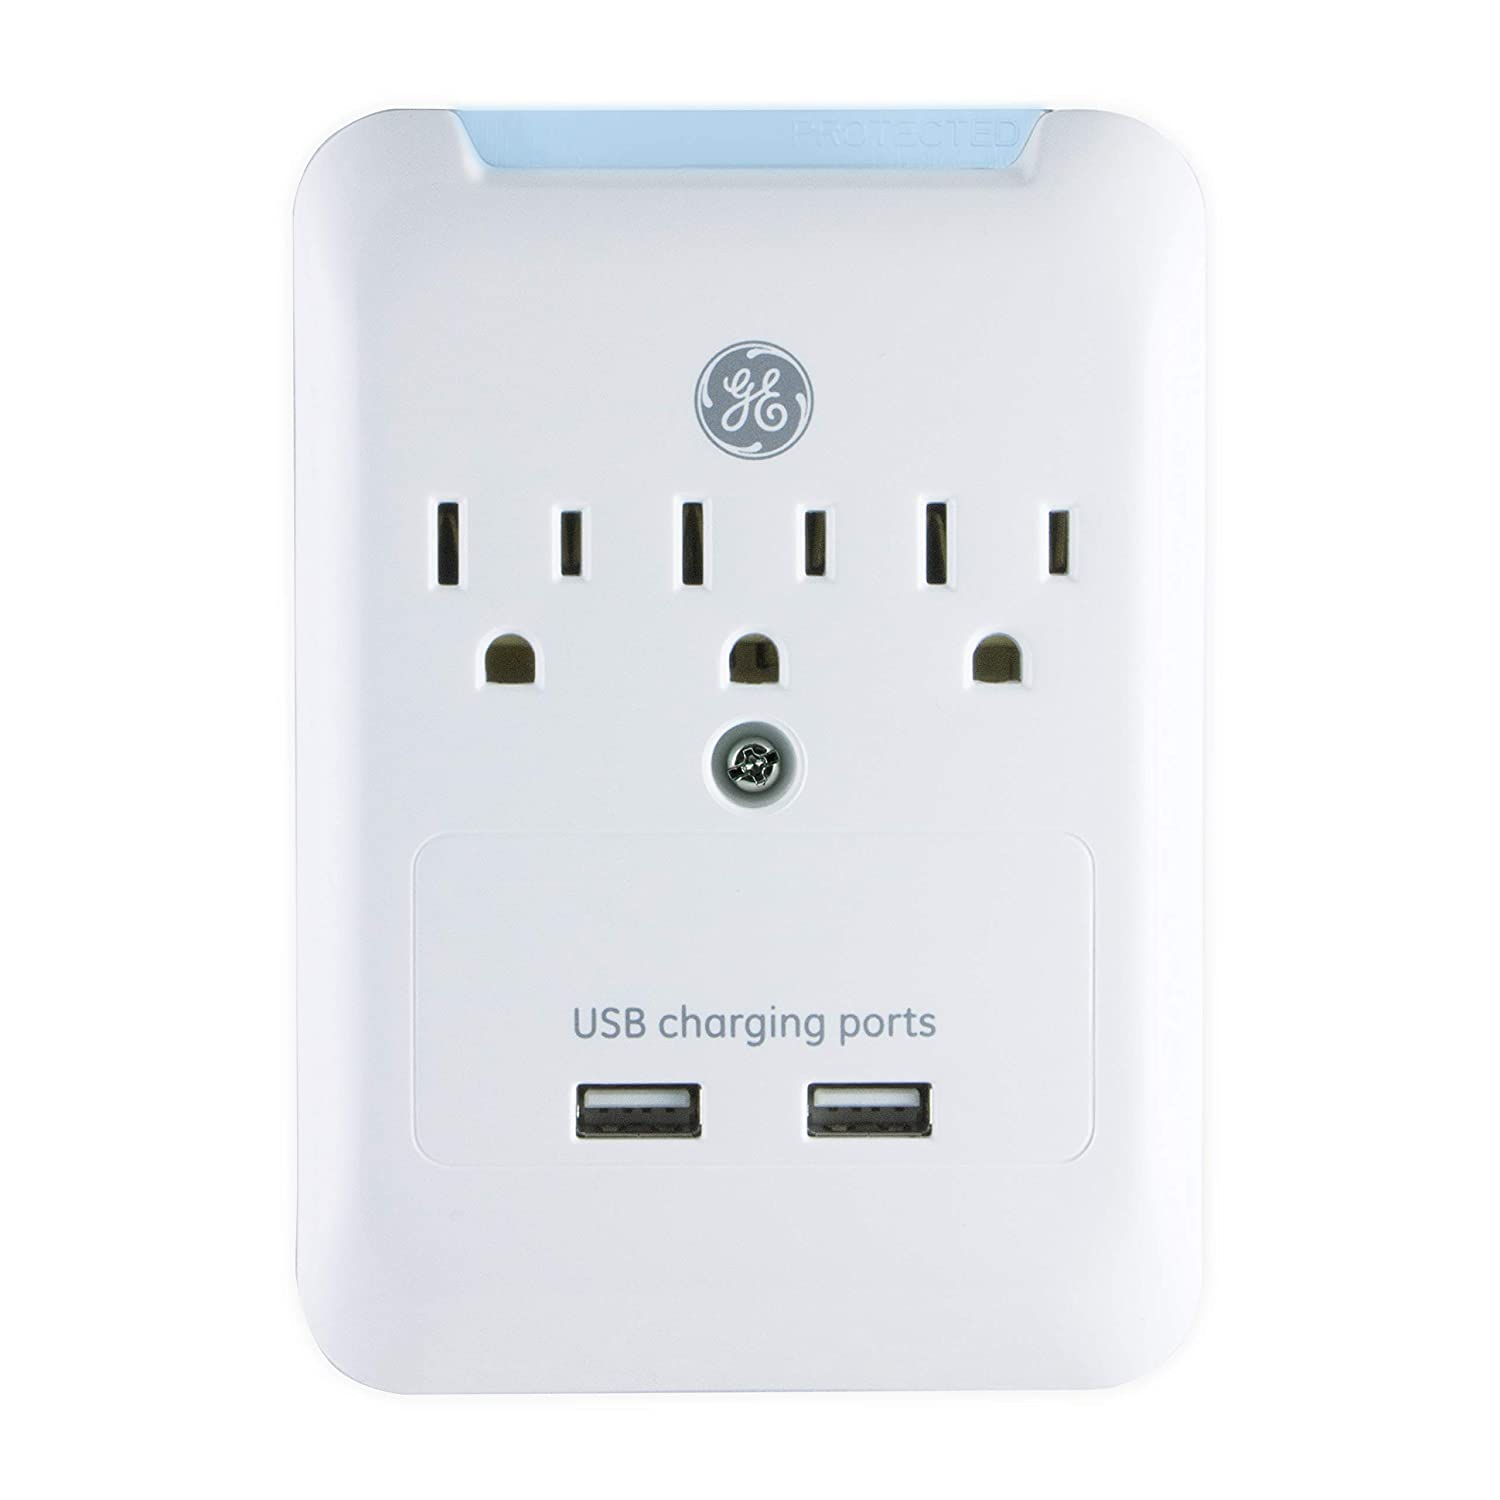 GE 2 USB 3 Outlet Surge Protector Outlet Adapter, 2.4A USB Ports, Charging Station Wall Tap, 540 Joule, Protected Indicator LED, 3 Prong, UL Listed, White, 33646